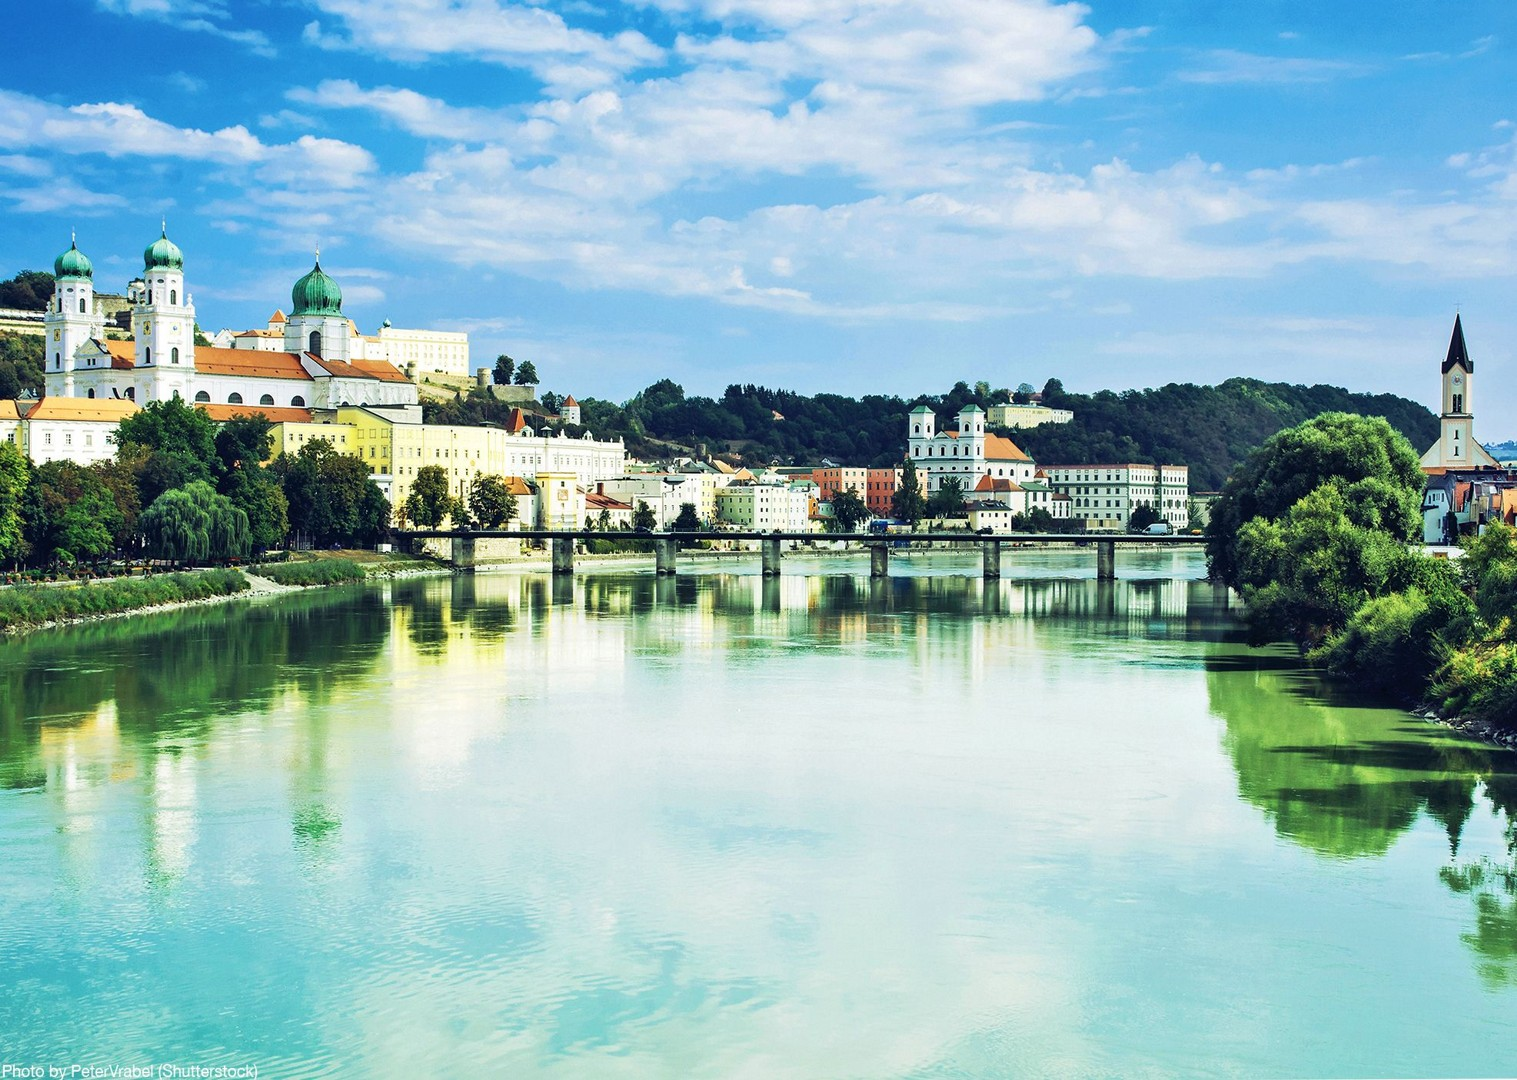 passau-bike-tour-danube-cycle-path-skedaddle.jpg - Germany and Austria - The Danube Cyclepath (10 Days) - Self-Guided Leisure Cycling Holiday - Leisure Cycling